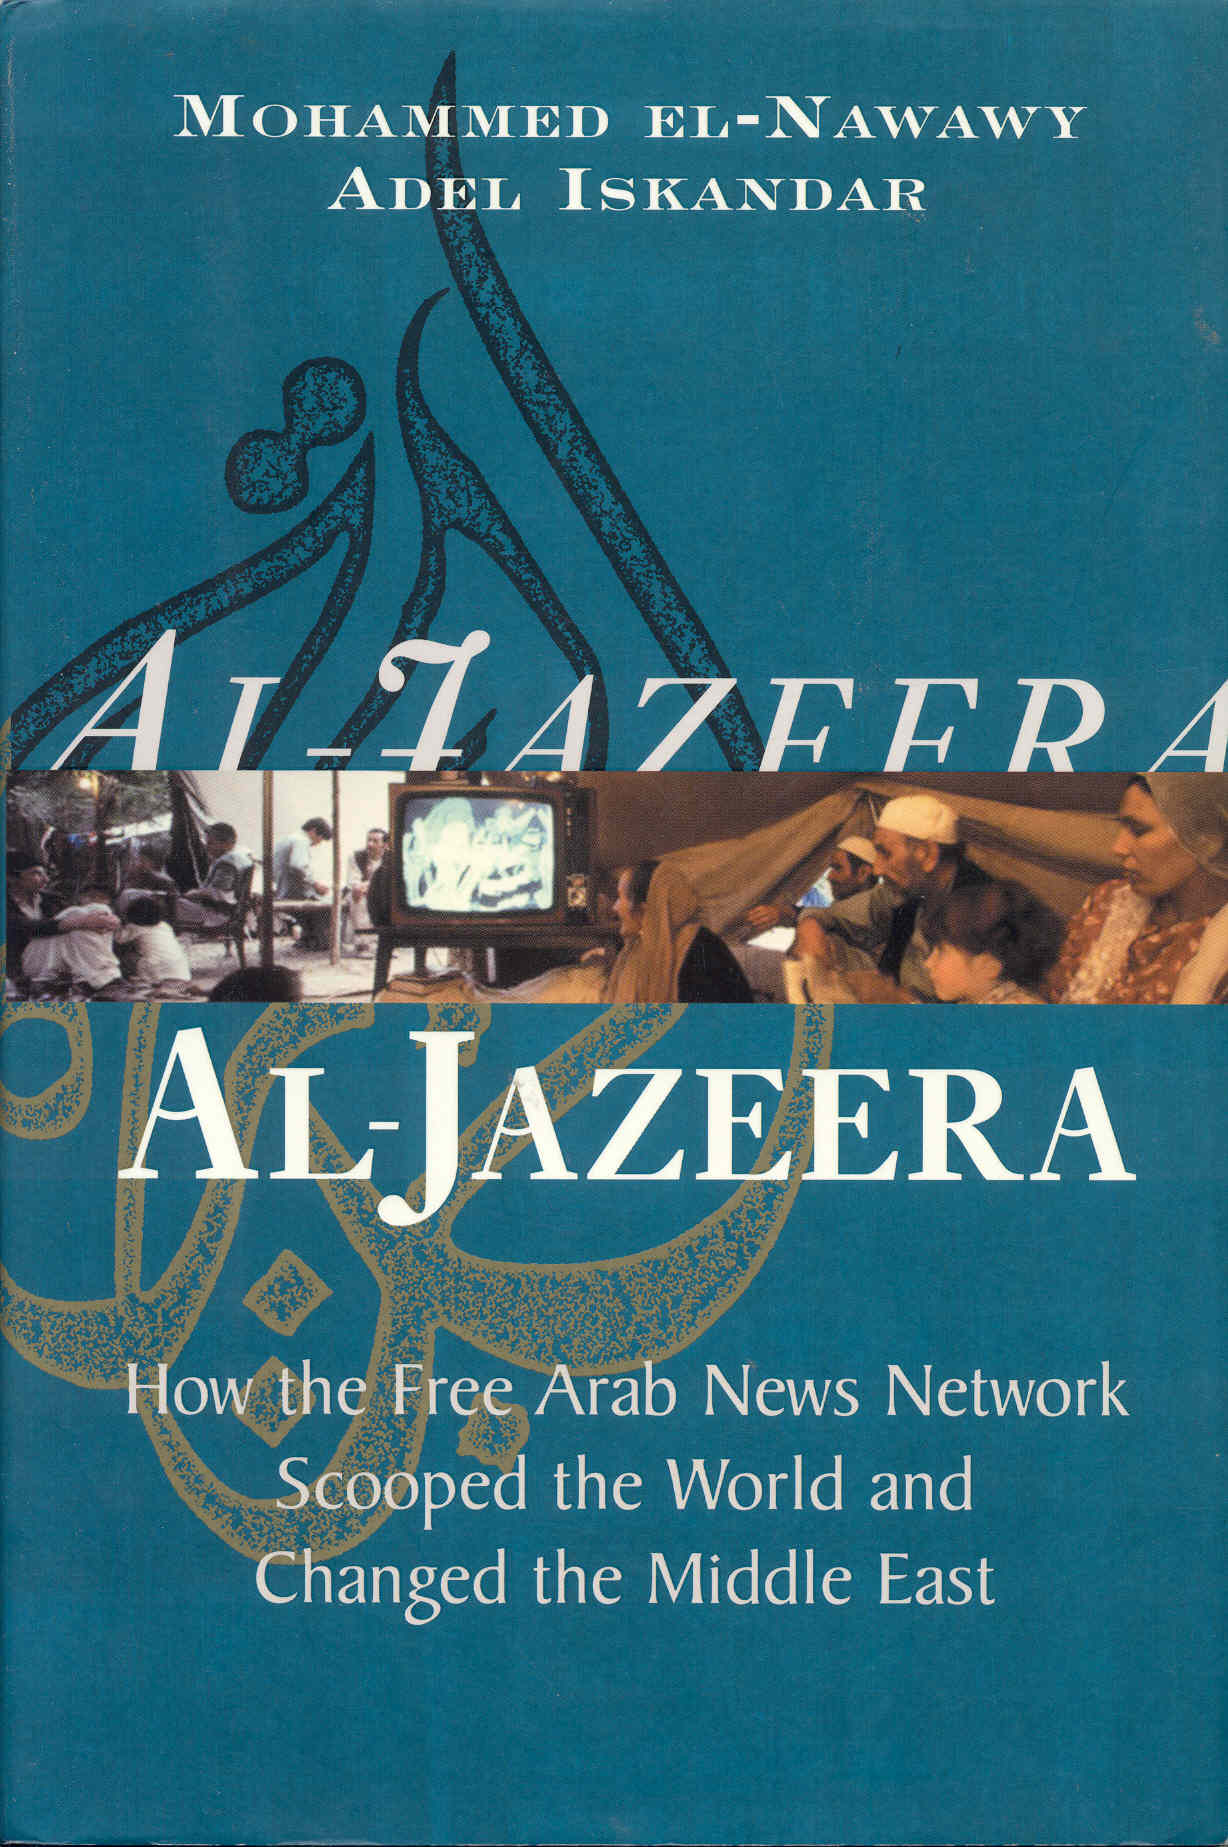 Image for Al-Jazeera: How the Free Arab News Network Scooped the World and Changed the Middle East